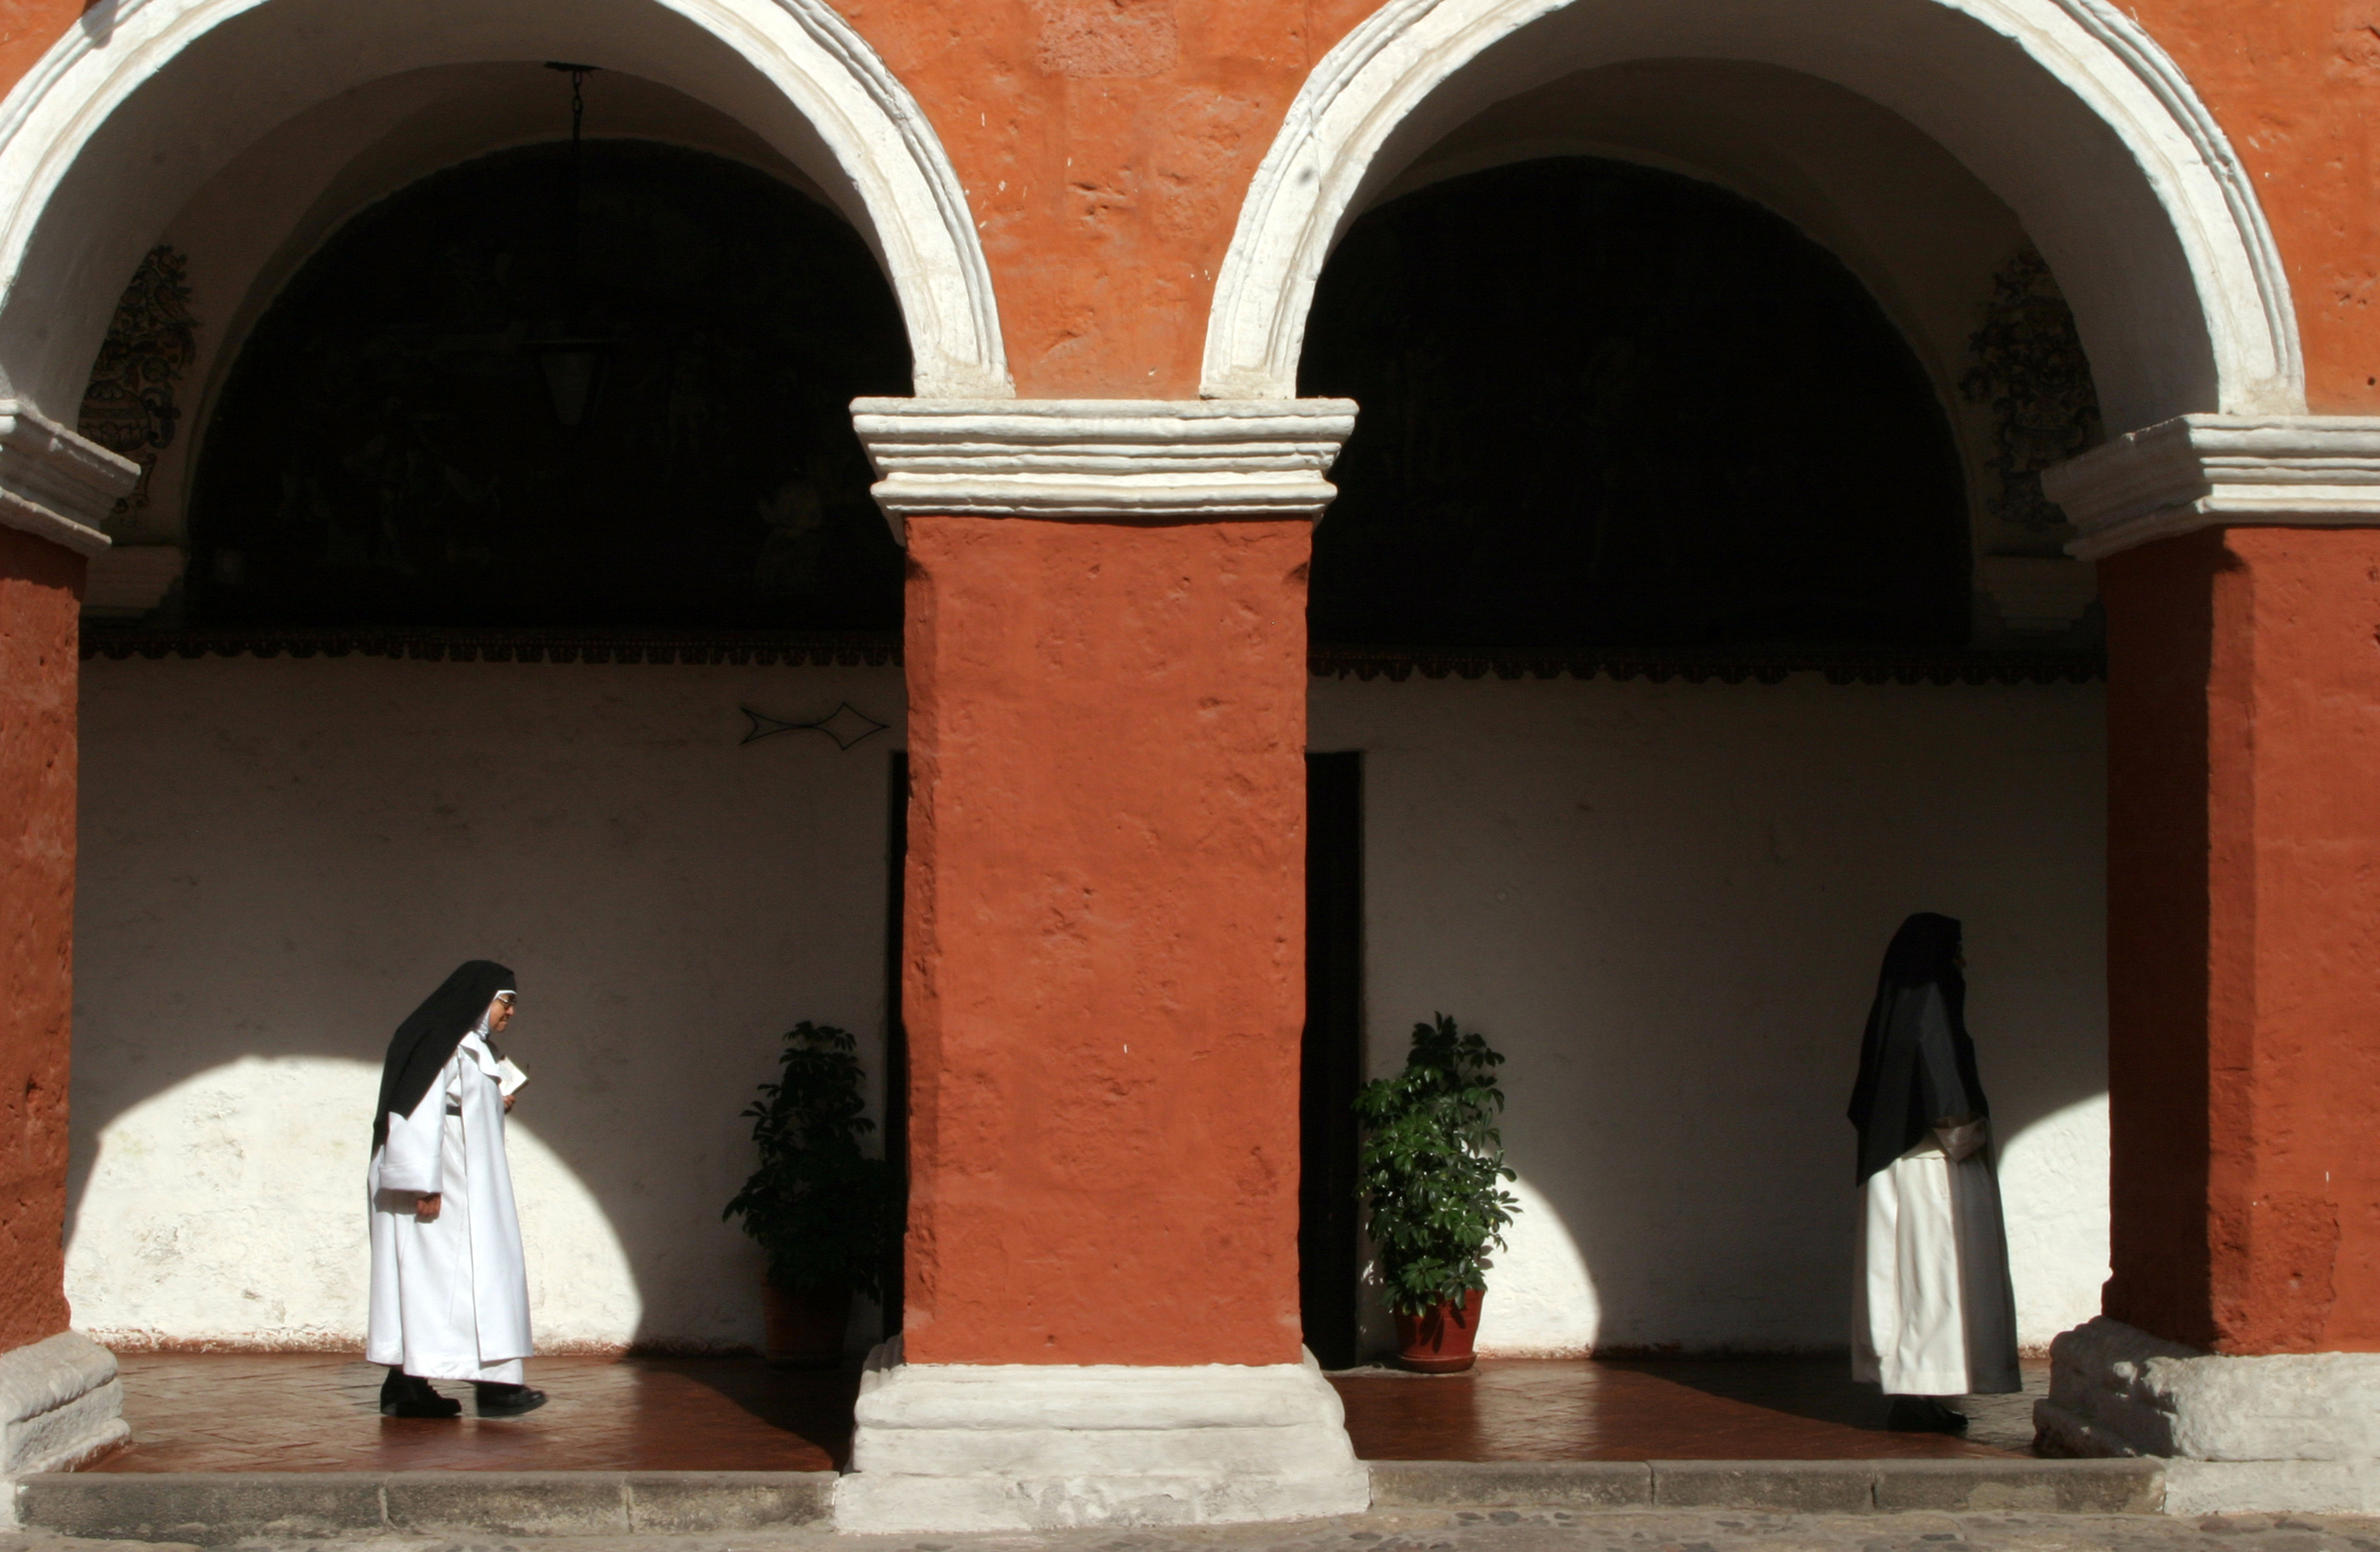 Sister Consuelo de Jesus walks back to the private part of the monastery after morning Mass.